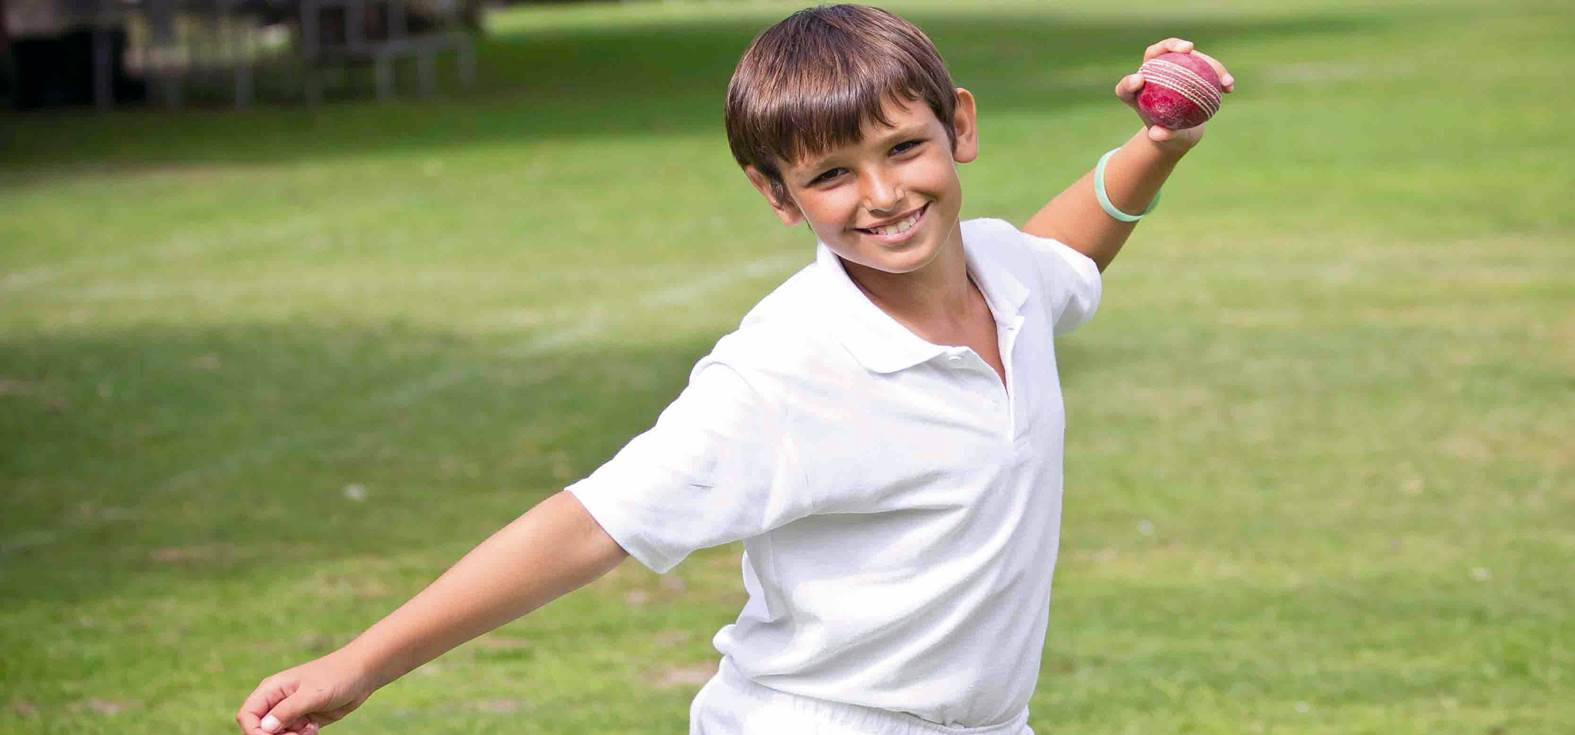 Cricket - Kid bowling 1